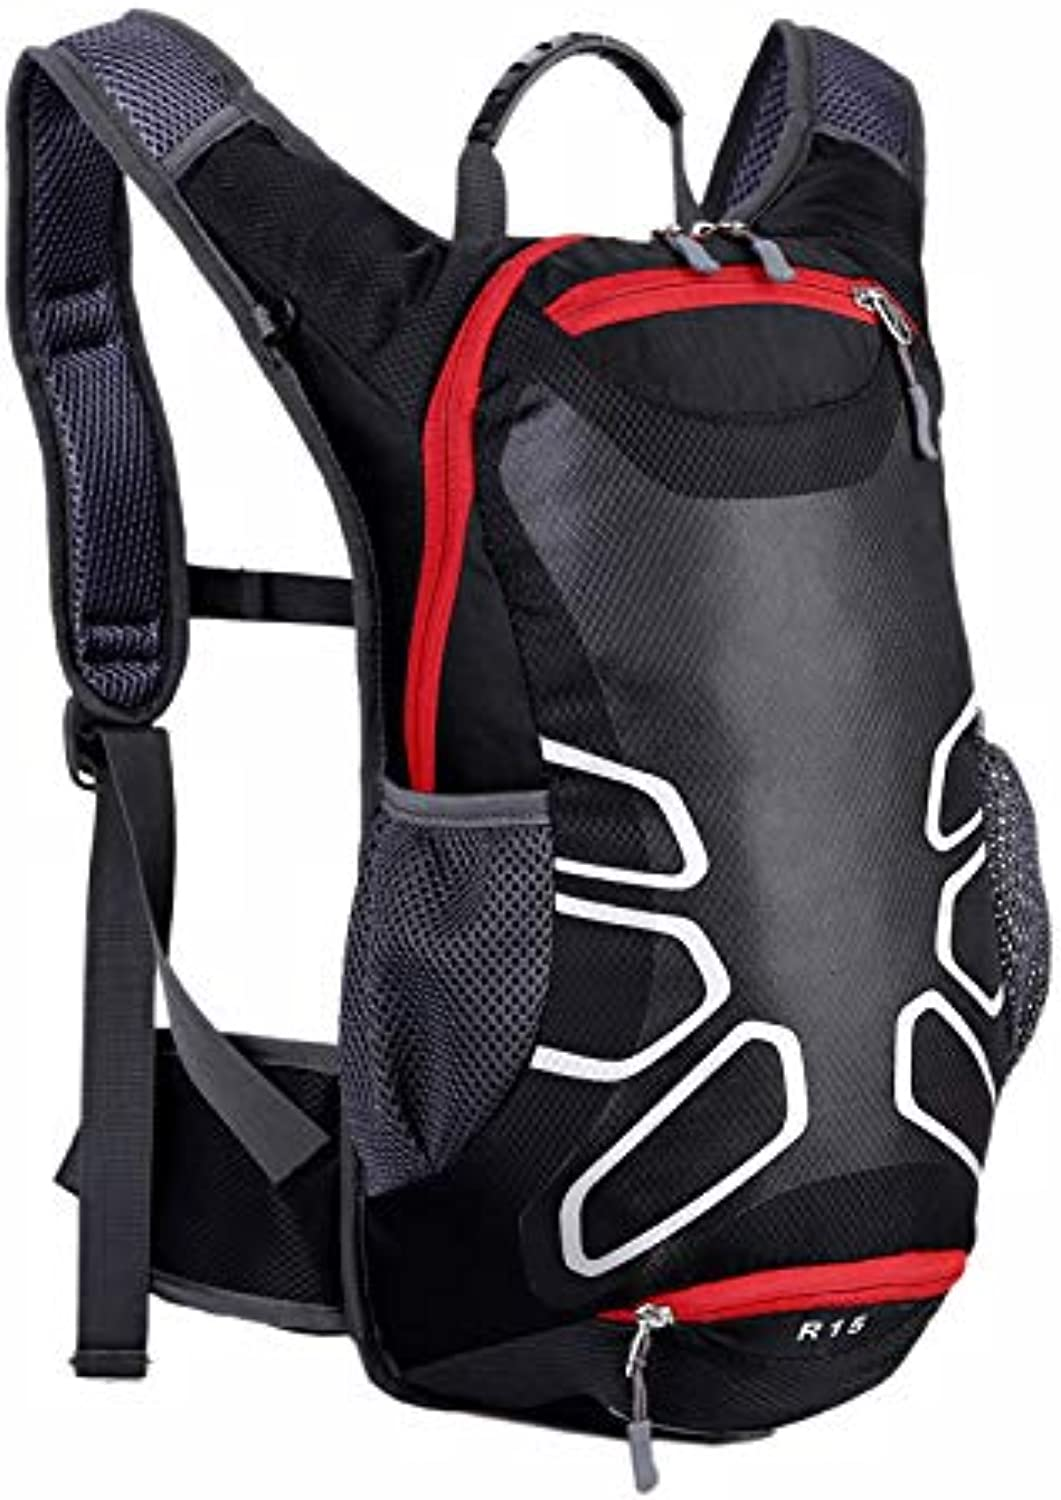 Backpack Riding Bag Basketball Backpack Sports Backpack Bicycle Outdoor Riding Bag,B